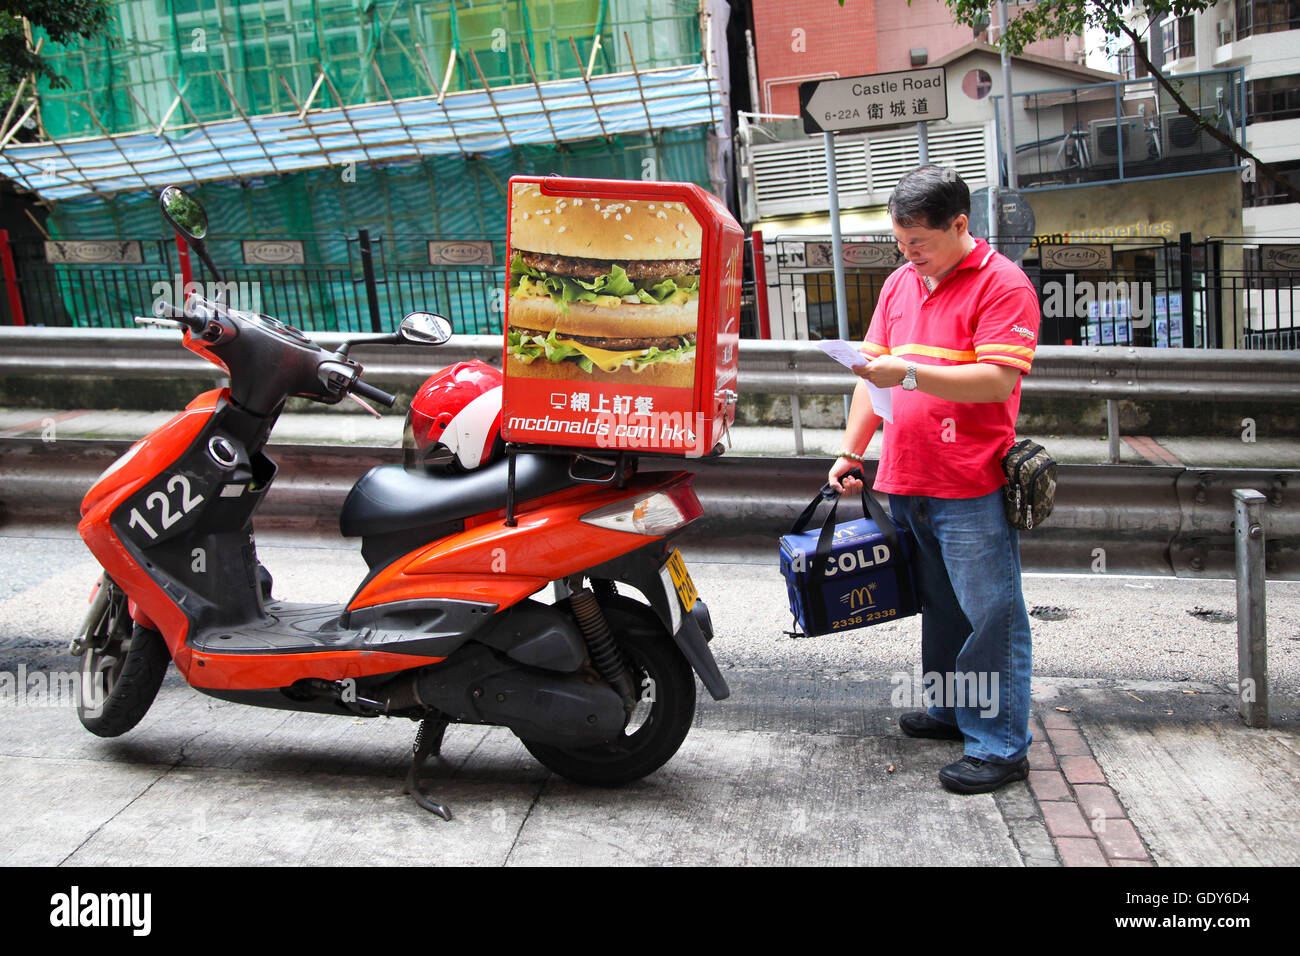 McDonalds delivery scooter in Kowloon, Honk Kong, China - Stock Image